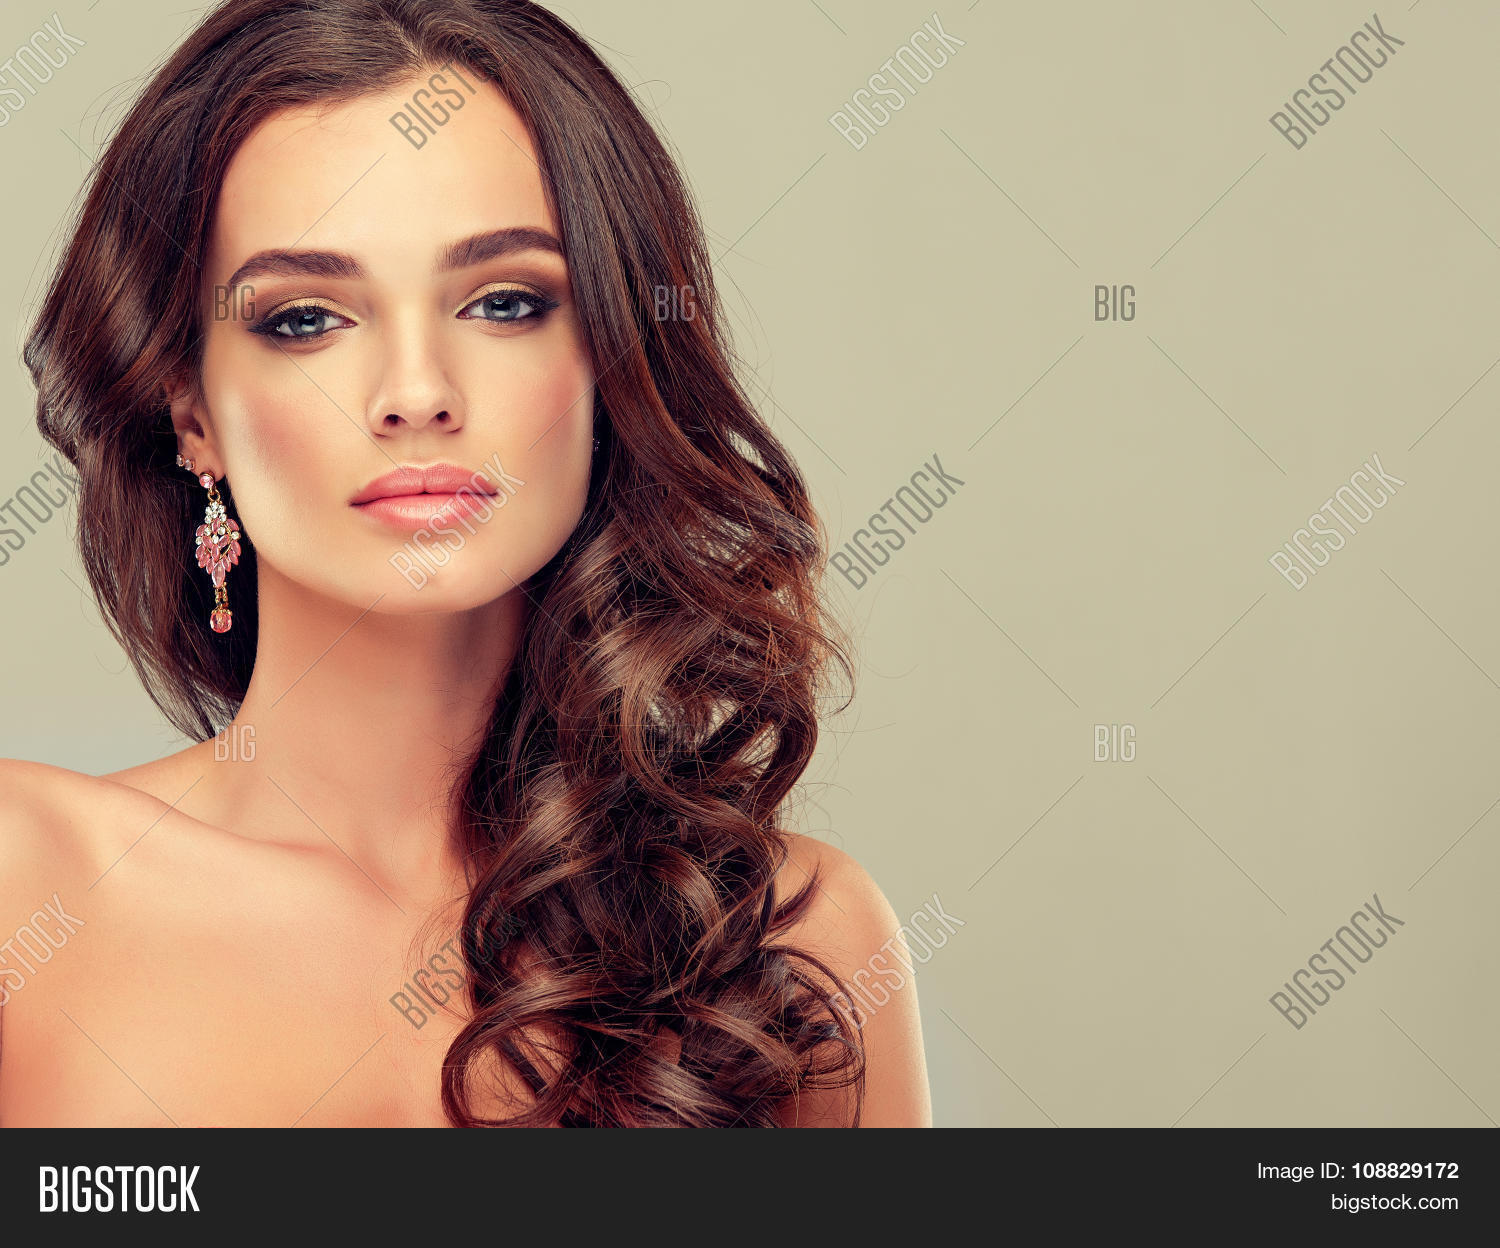 Beautiful Girl Light Brown Hair With An Elegant Hairstyle Hair